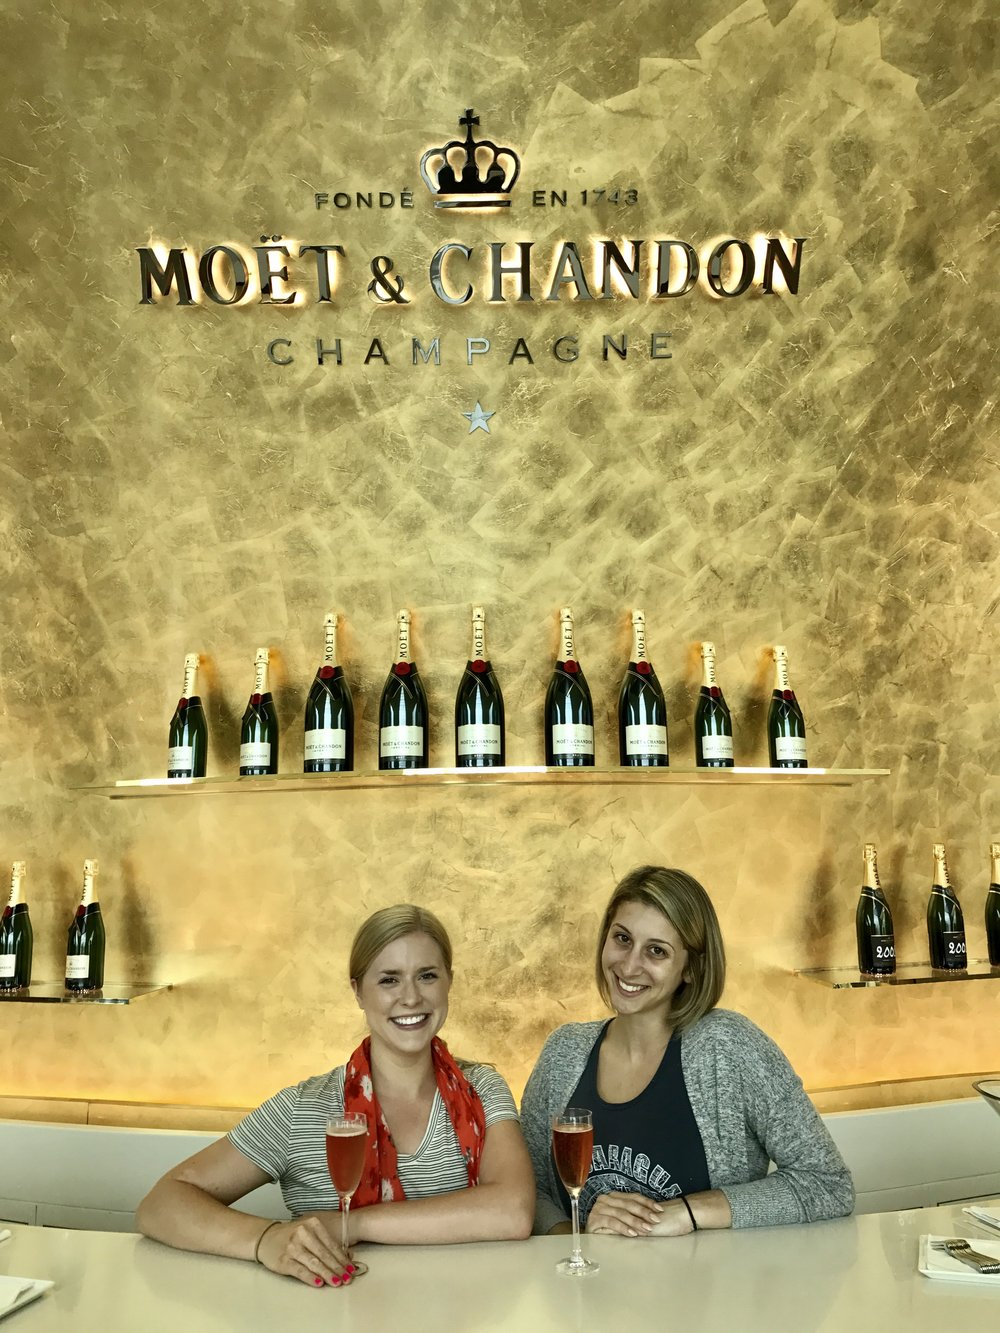 Dubai layover ✔ - ...did I mention the Emirates Business Class lounge has a Moët & Chandon champagne bar?